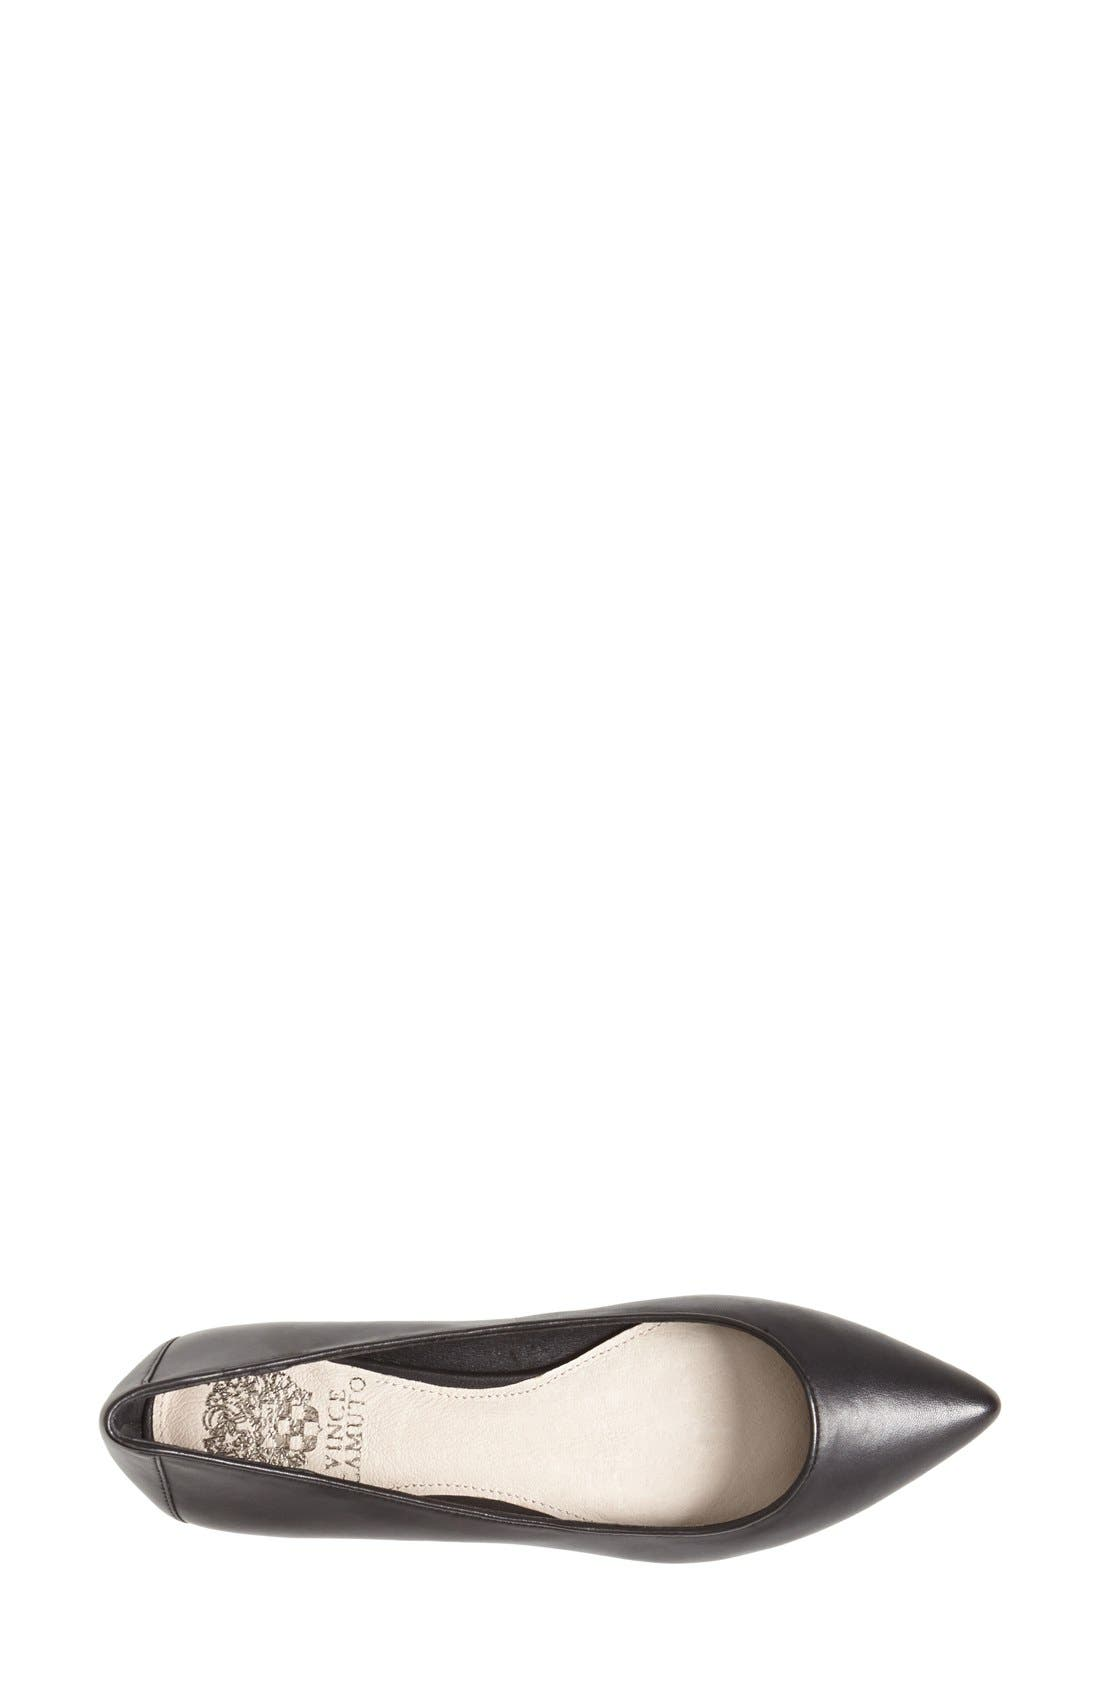 Alternate Image 3  - Vince Camuto 'Hasse' Pointy Toe Flat (Women)